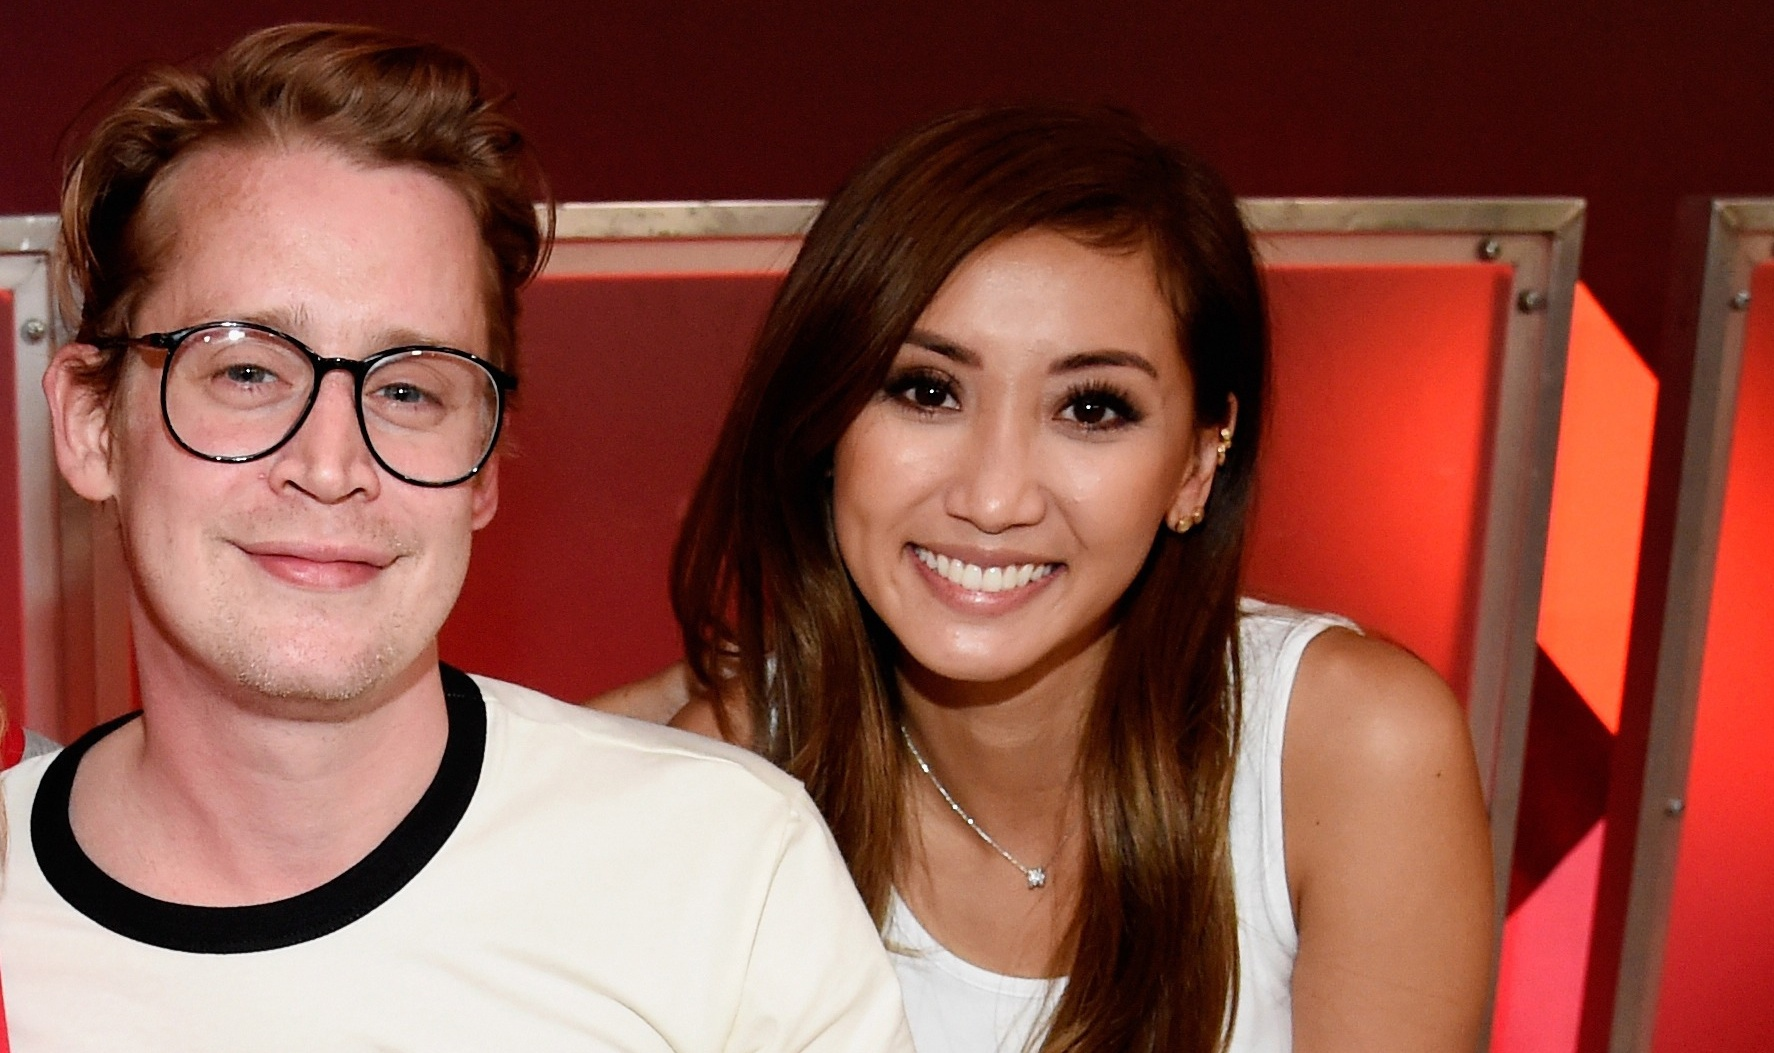 Macaulay Culkin et Brenda Song parents d'un petit garçon !